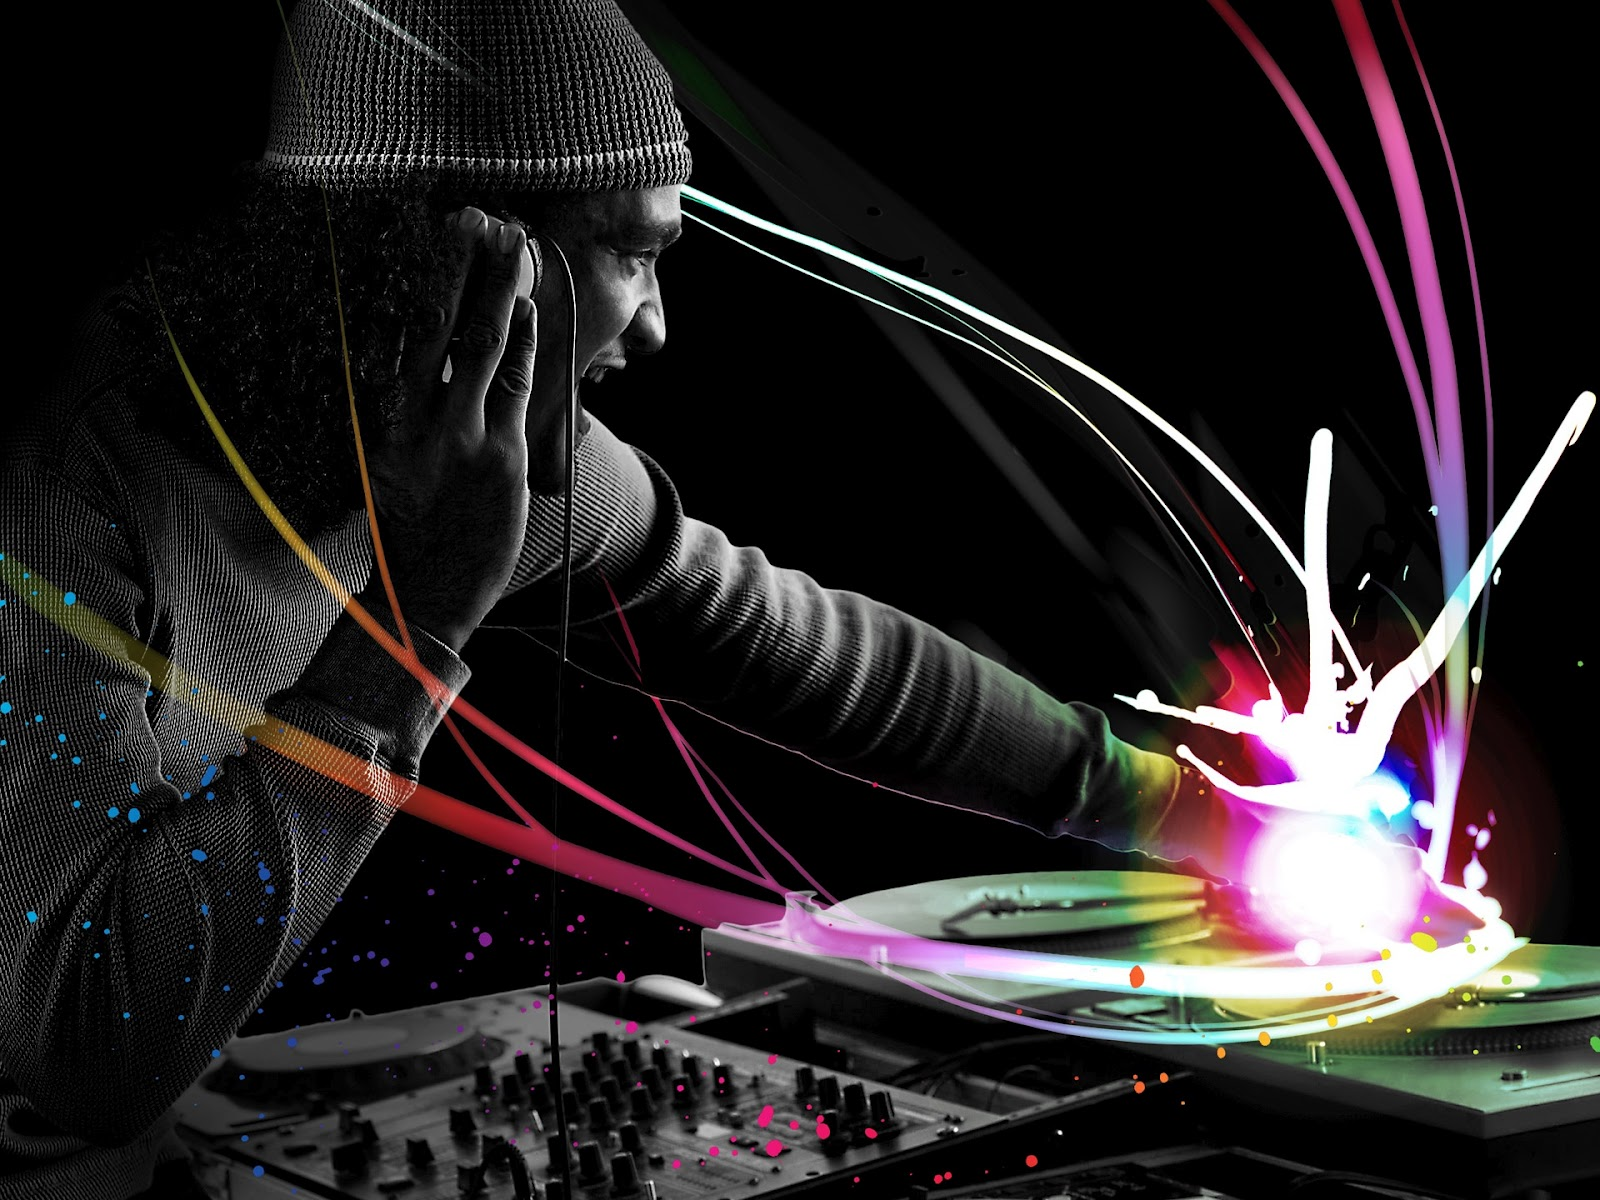 Cool Abstract Dj Music Wallpaper: DJ Songs & HD Wallpapers